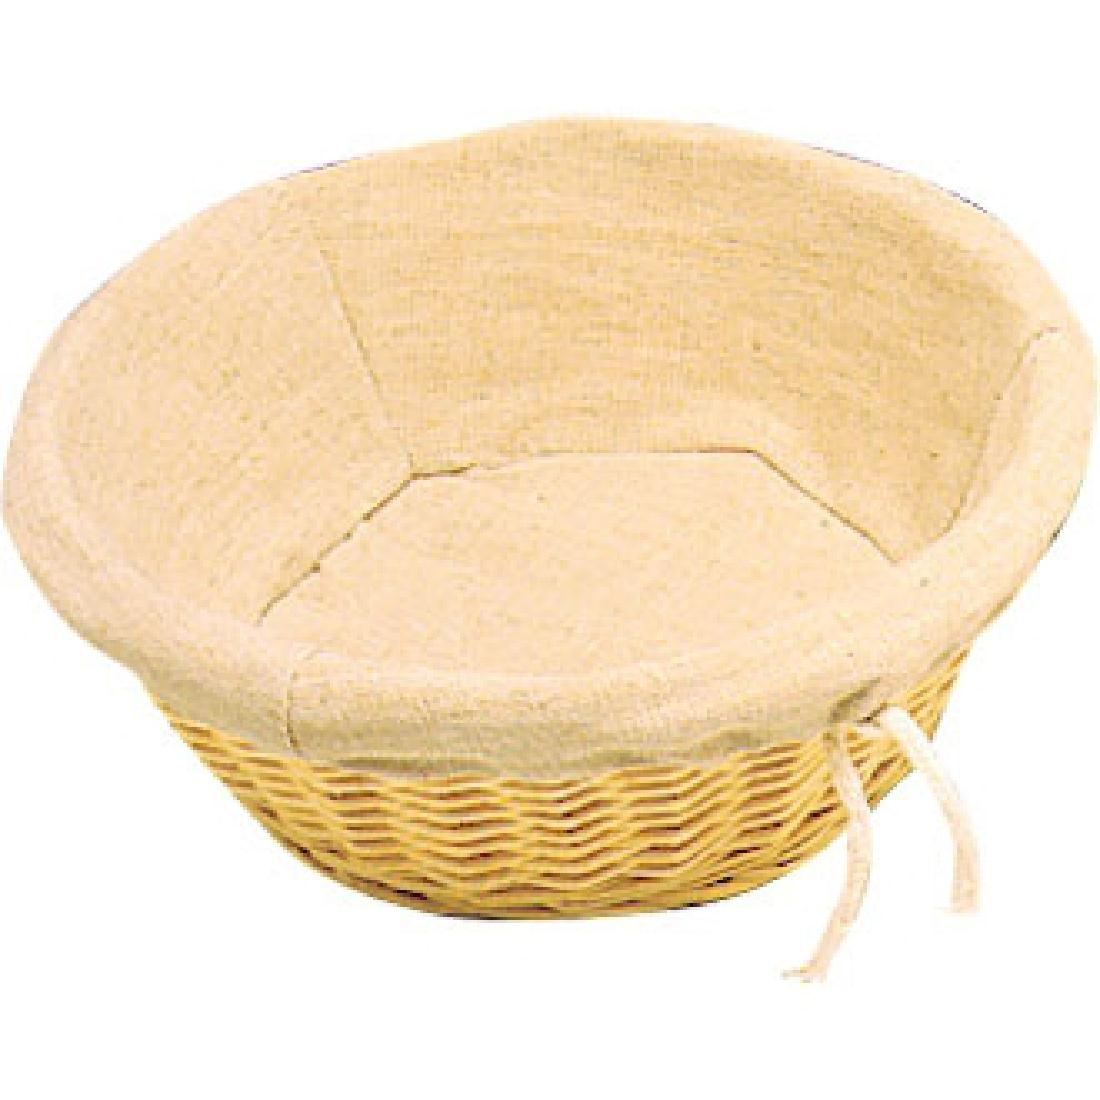 Wicker Round Basket